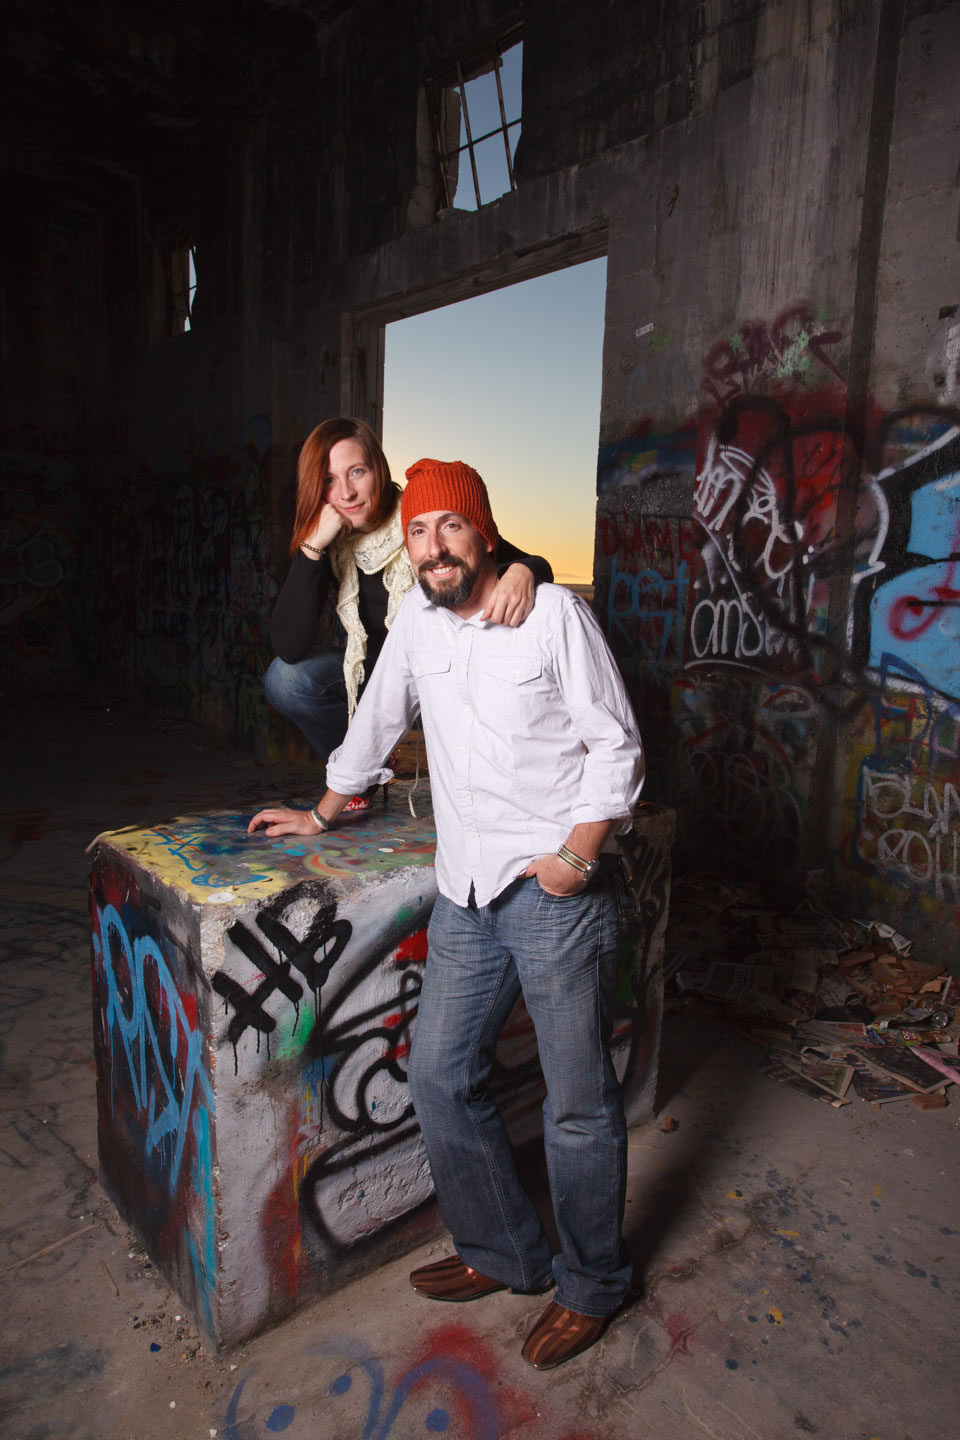 Anne and Aaron in the abandoned building